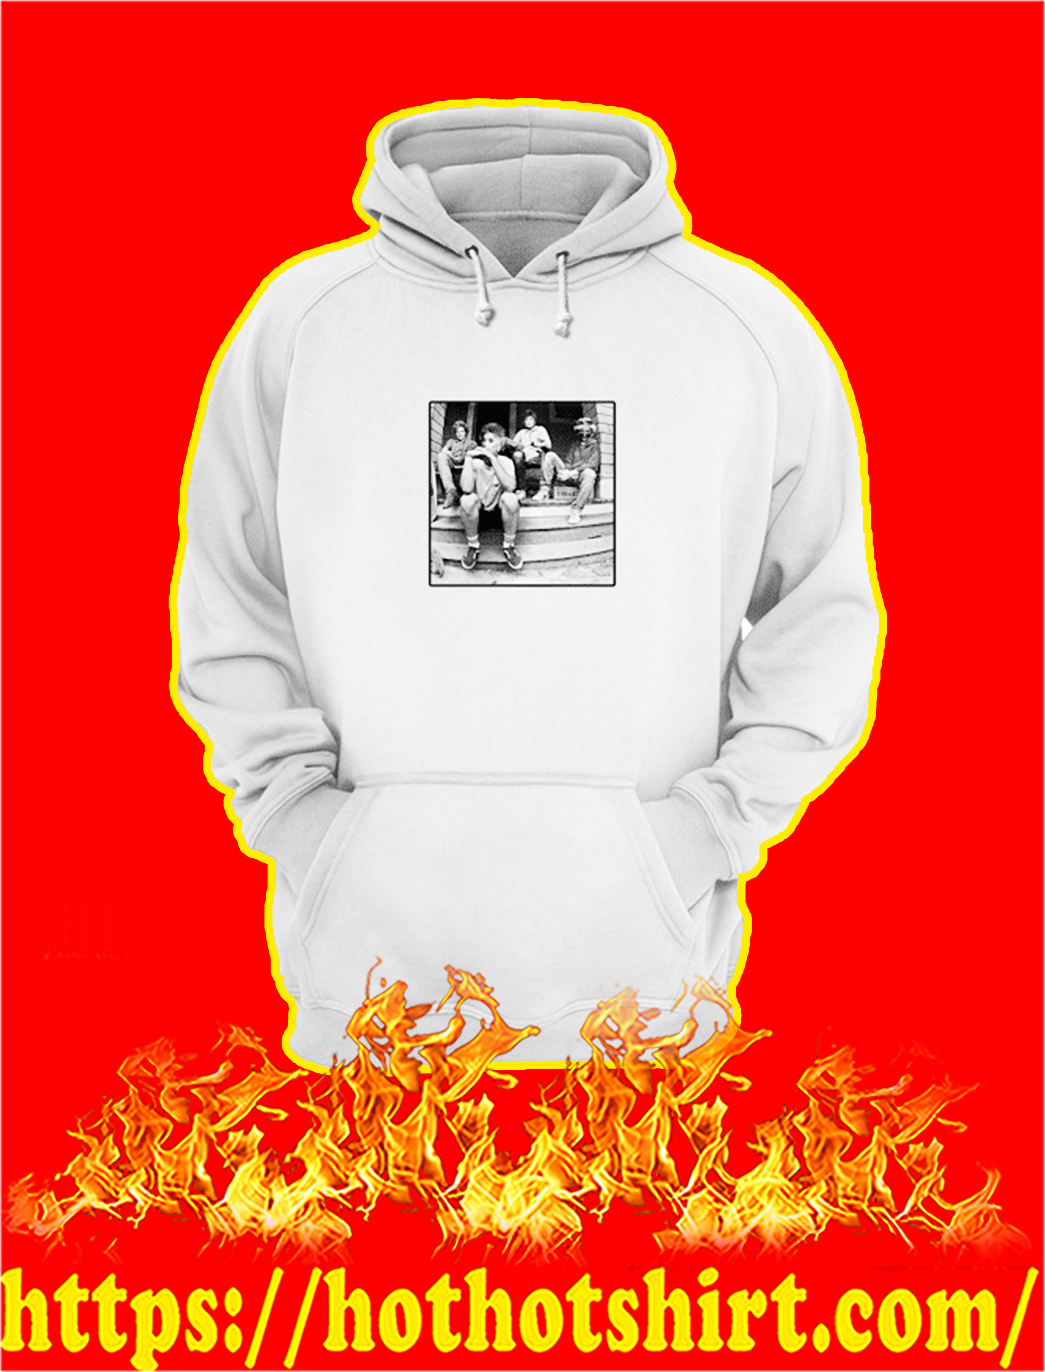 The Golden Girls Salad Days hoodie